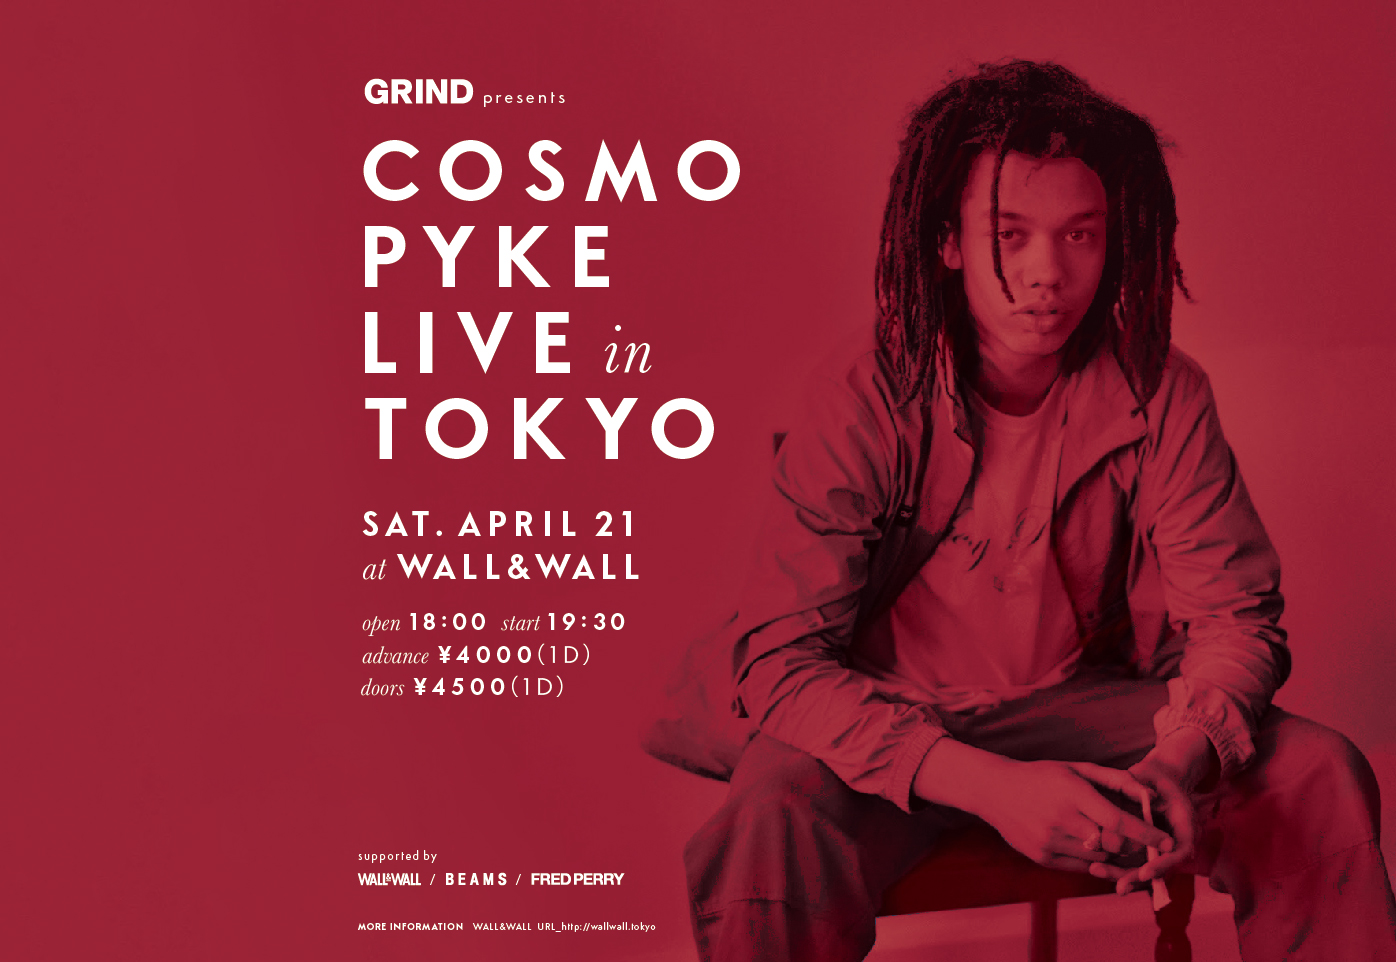 Cosmo Pyke LIVE in TOKYO